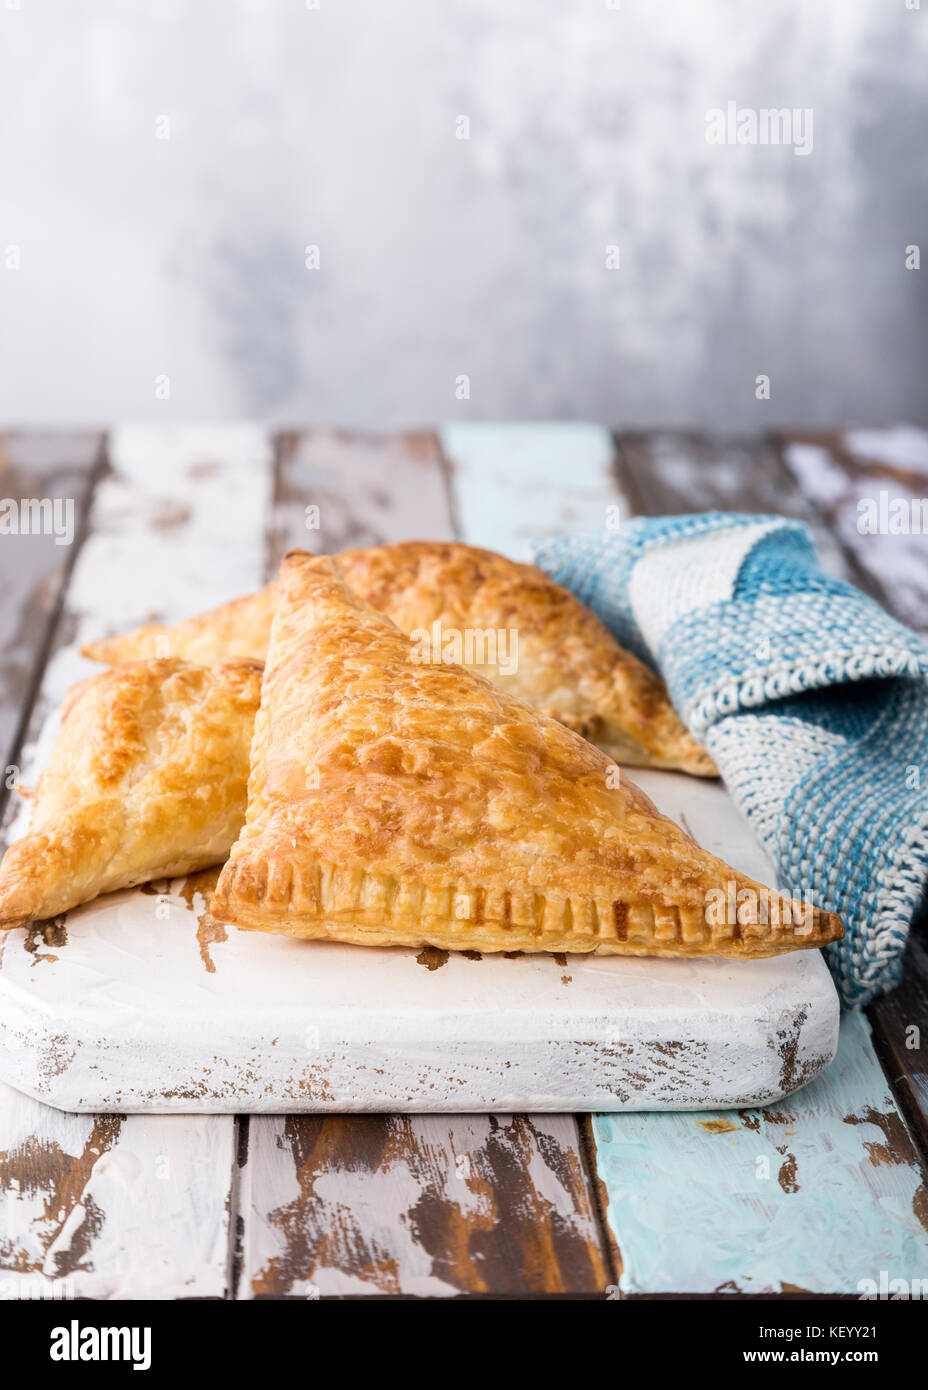 Puff pastry triangles - Stock Image